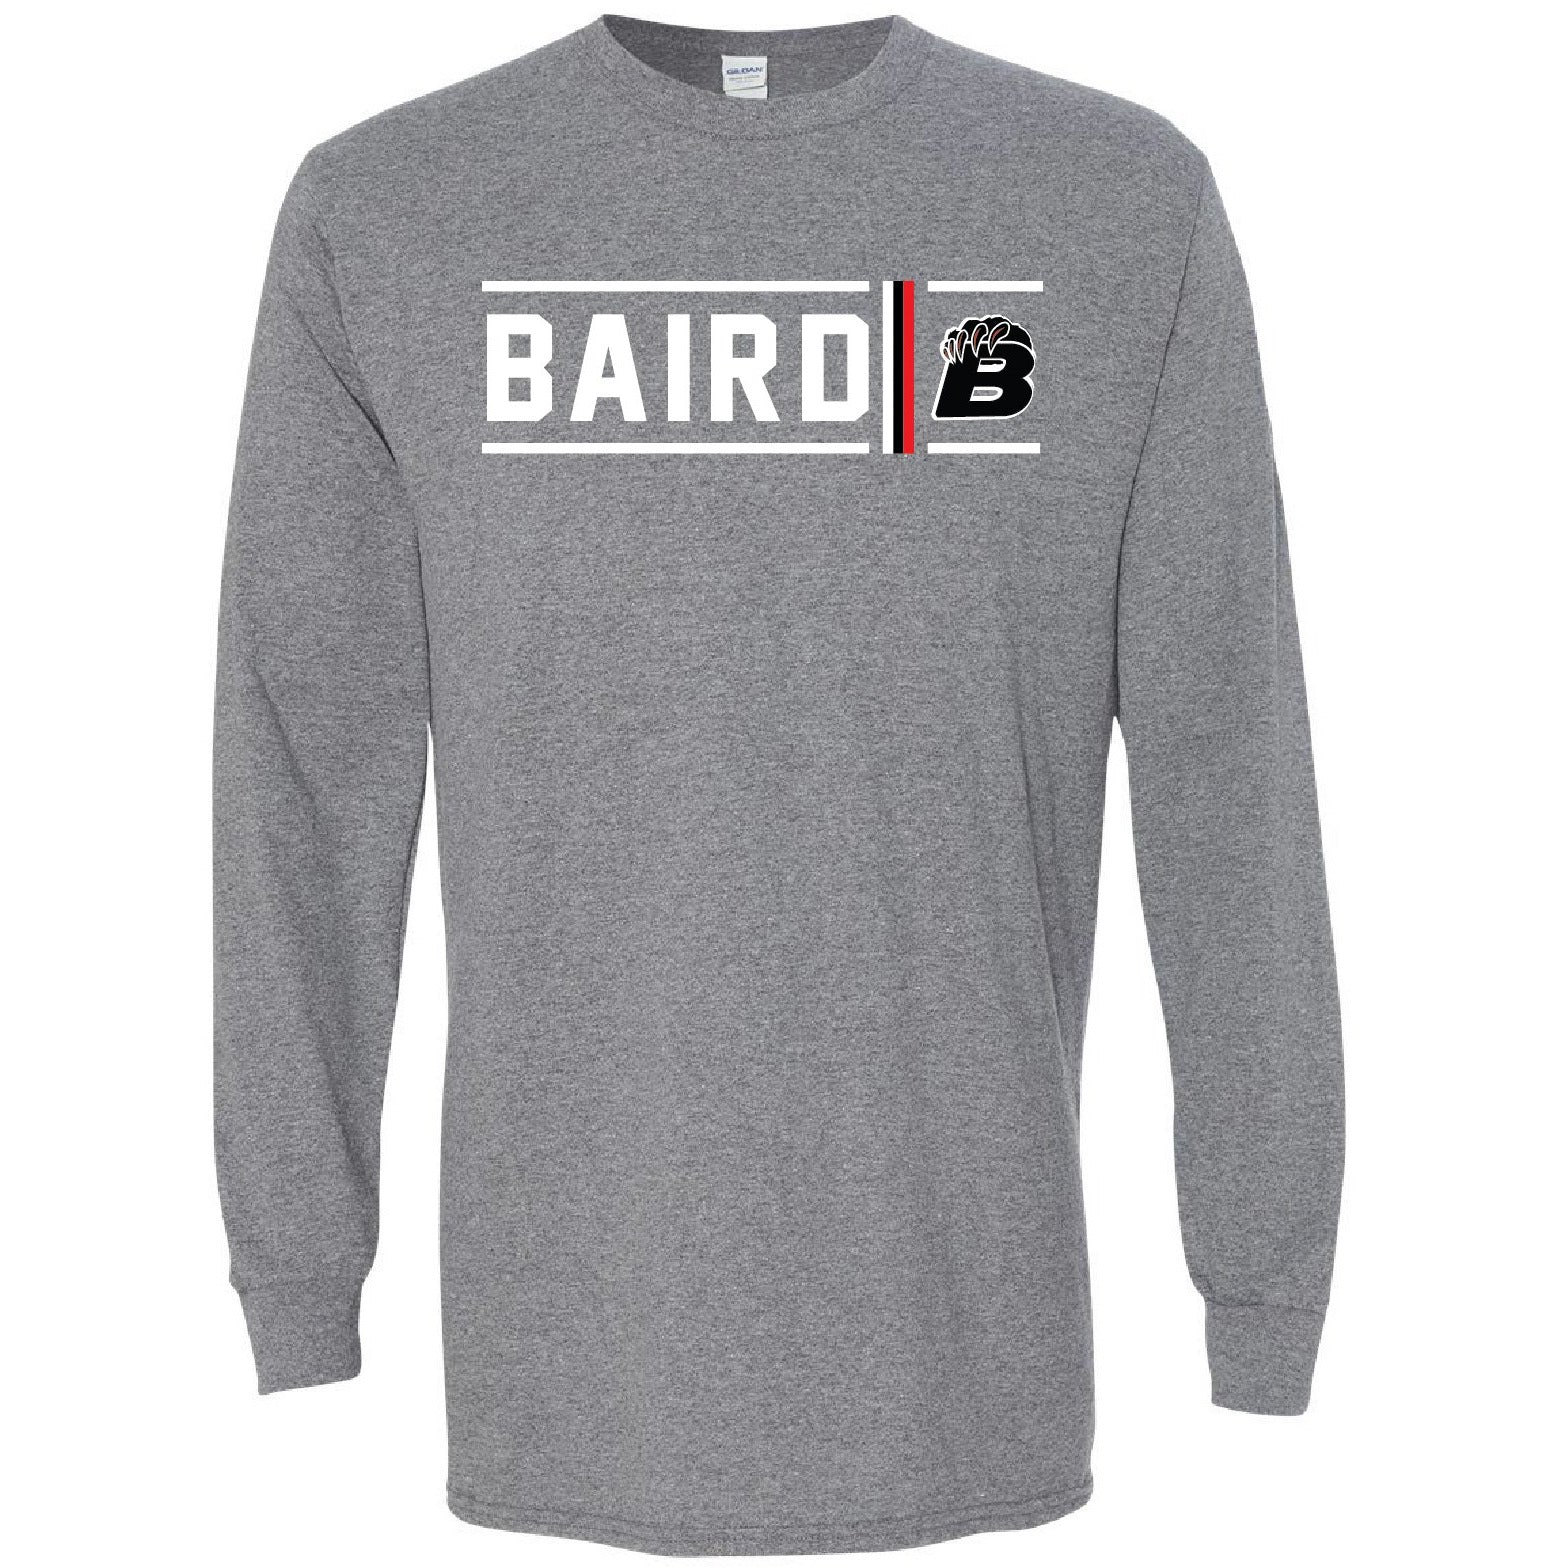 Baird Bears - Simple Stripe Long Sleeve T-Shirt